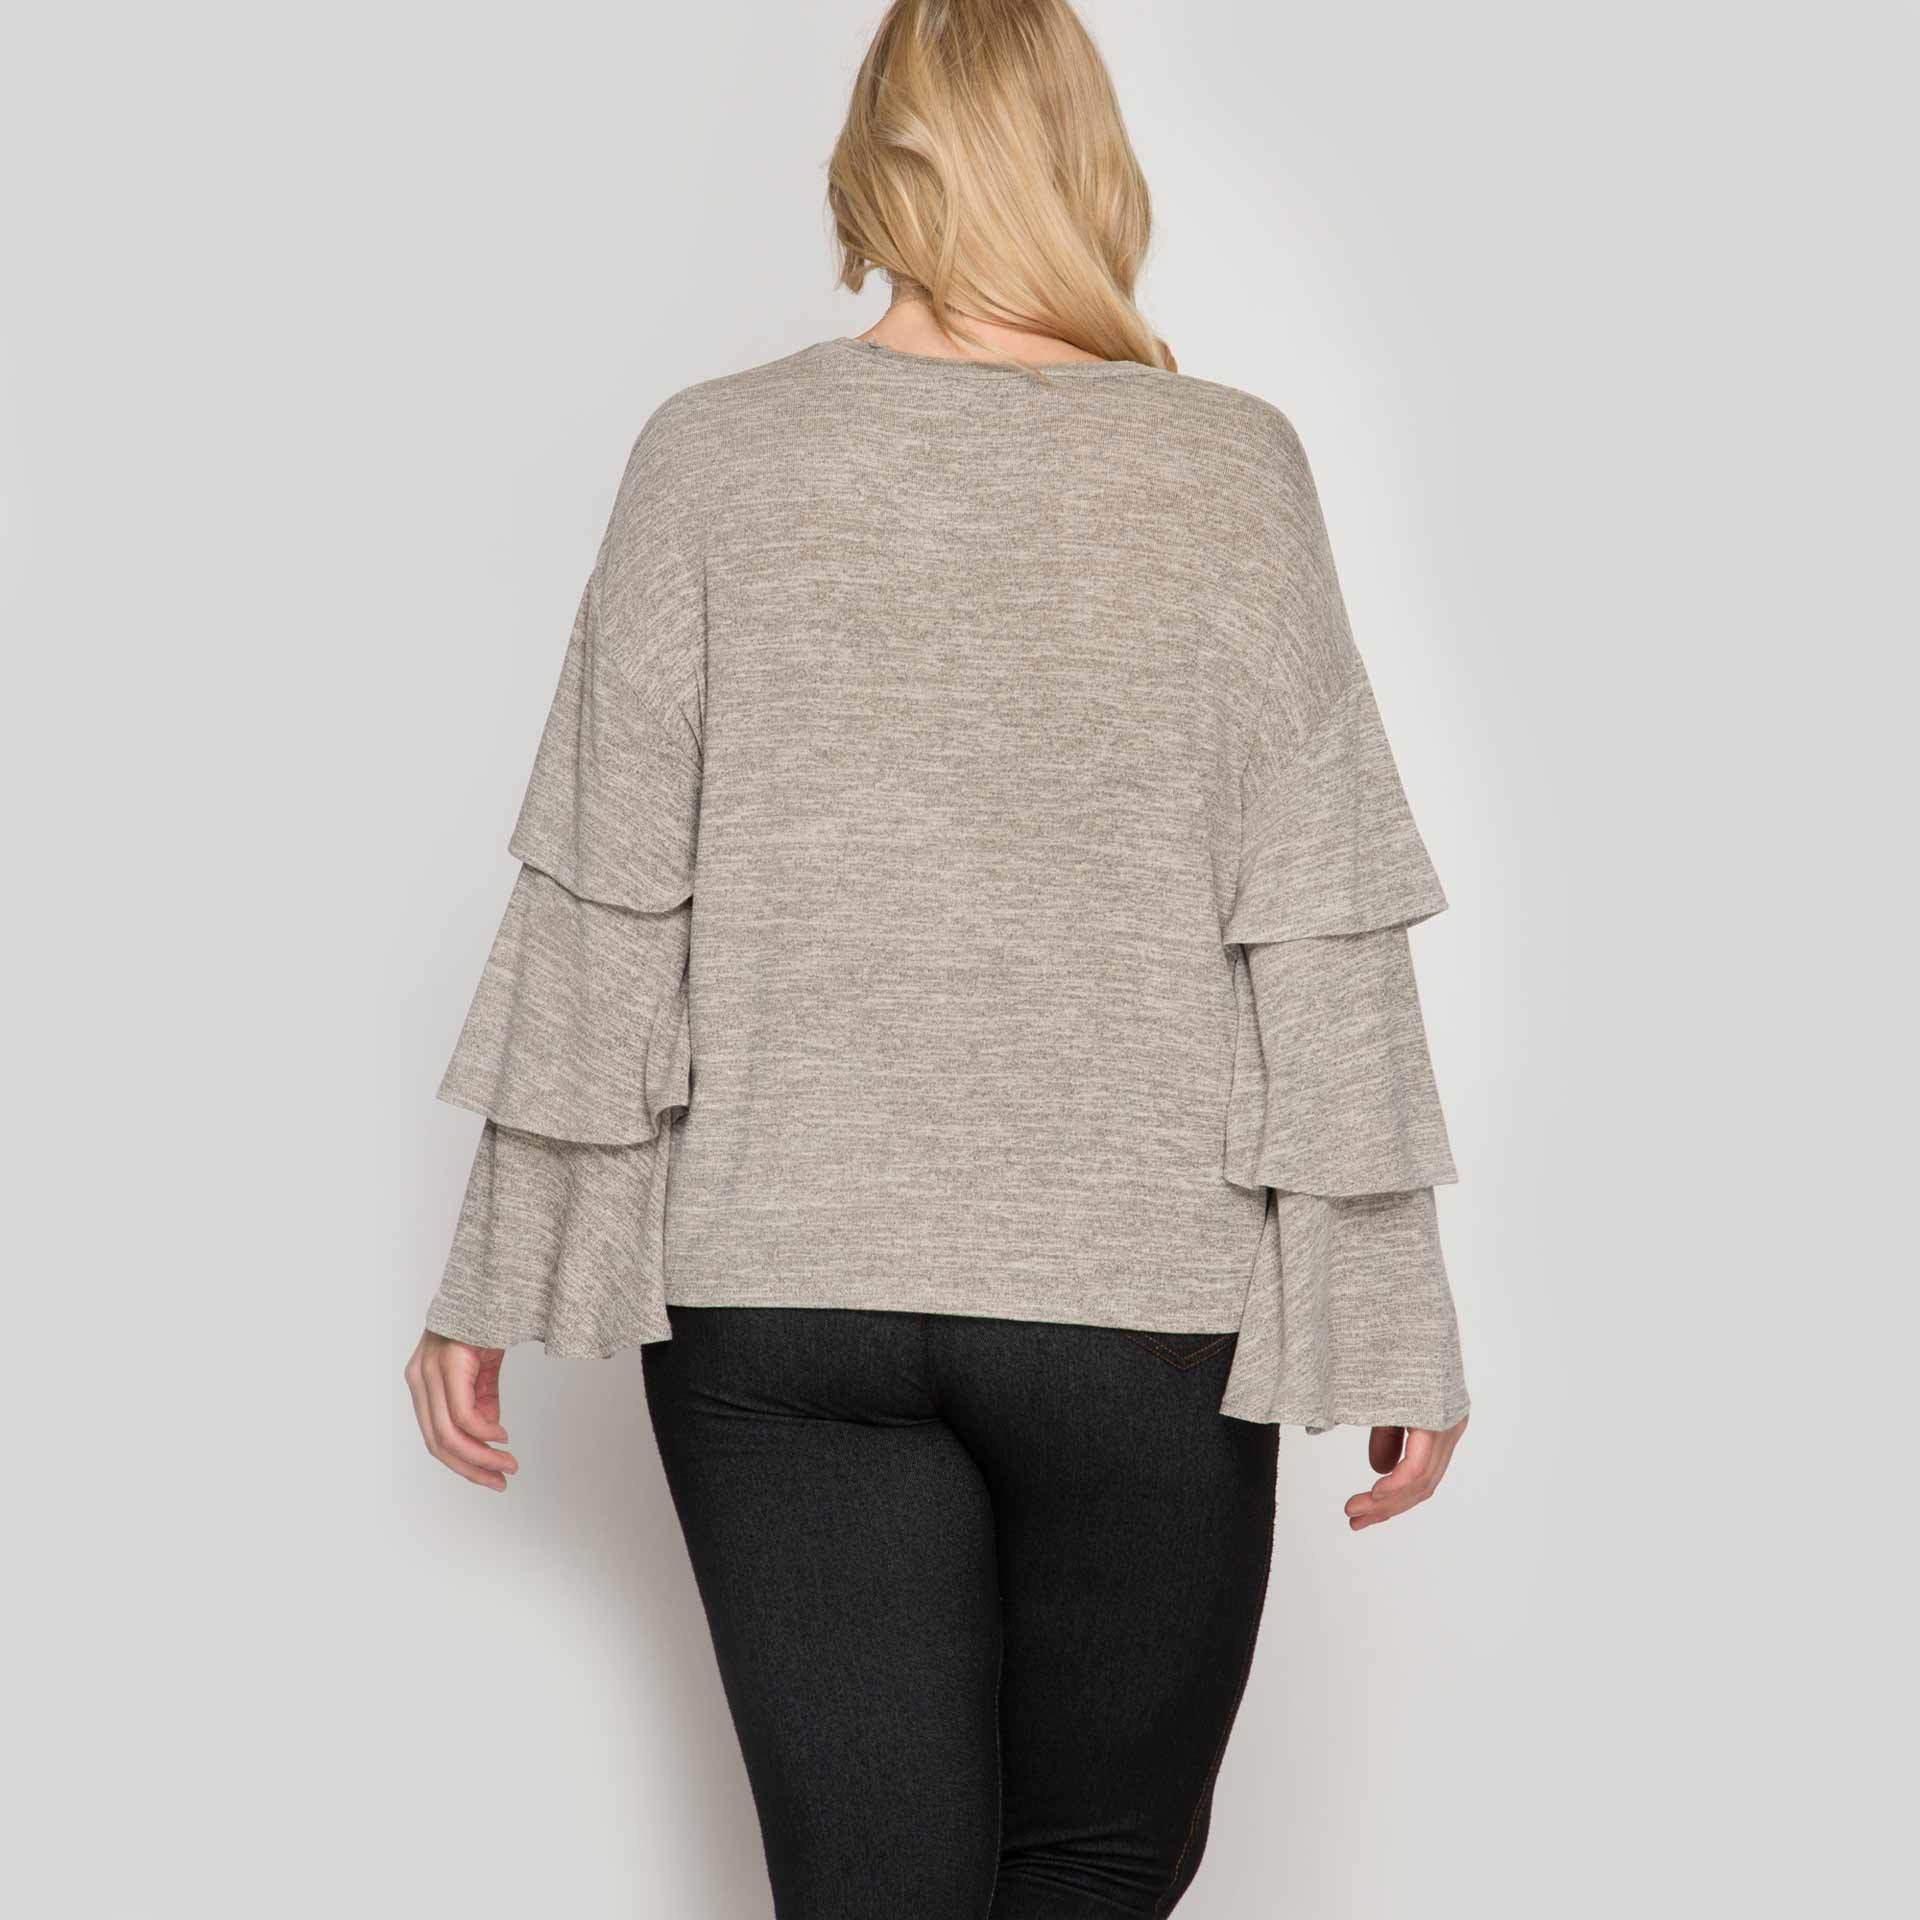 Plus Size Long Ruffled Bell Sleeve Two Tone Top in Taupe - Arlo and Arrows